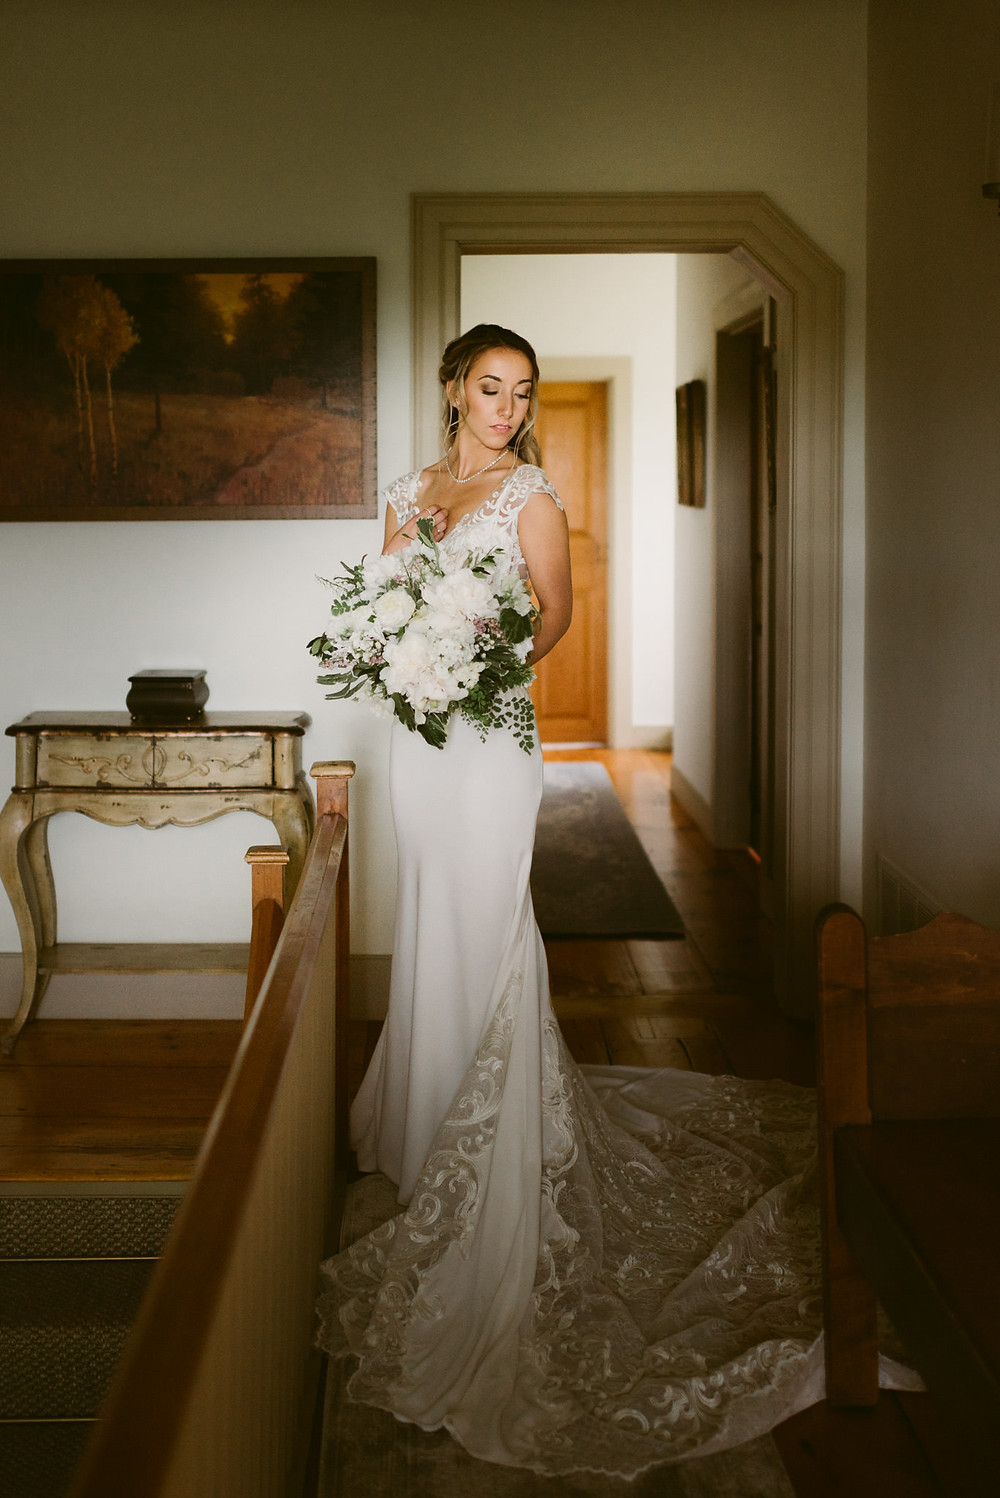 Romantic Spring Wedding at a Thoroughbred Farm in Saratoga Springs, NY